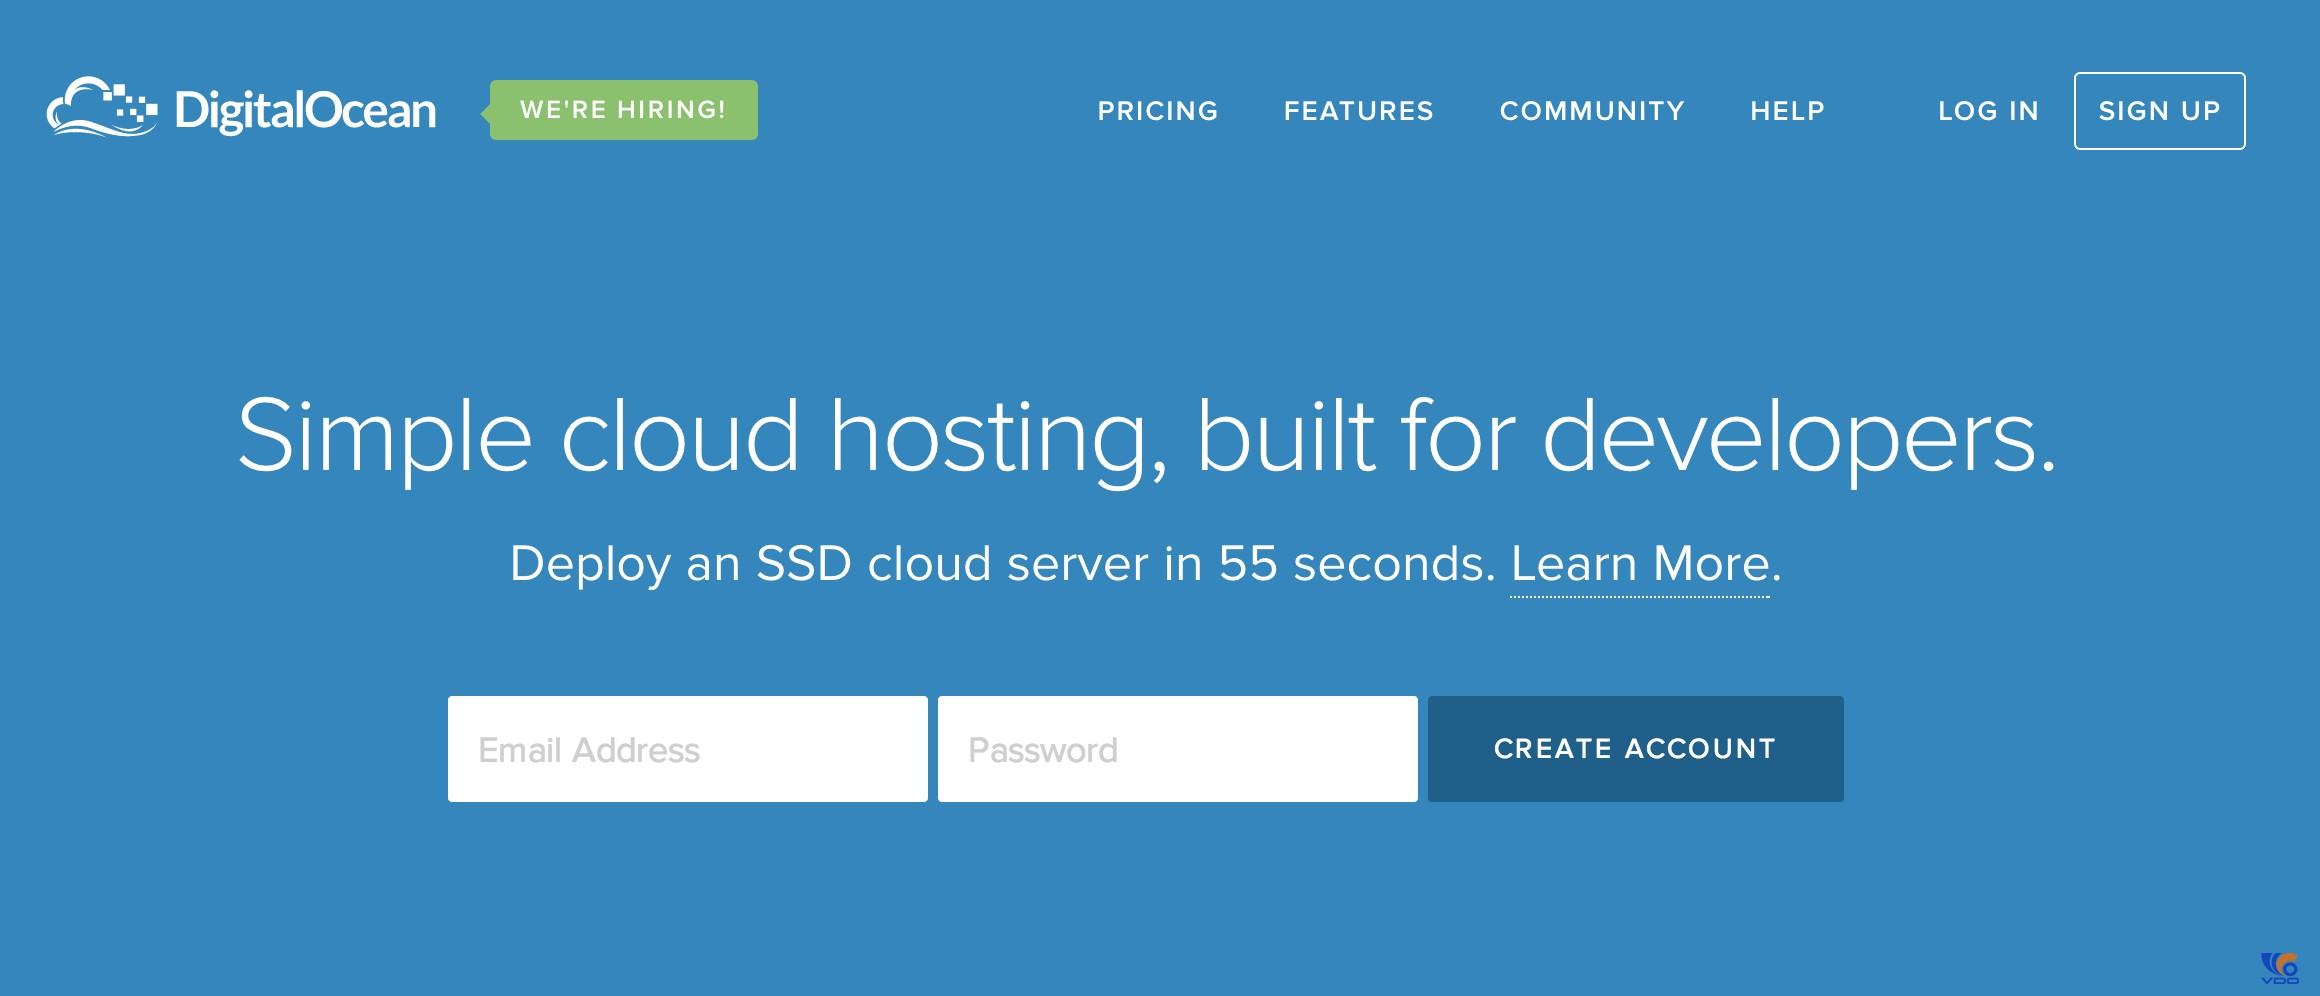 vps-free-thang-5-digitalocean-tang-ma-coupon